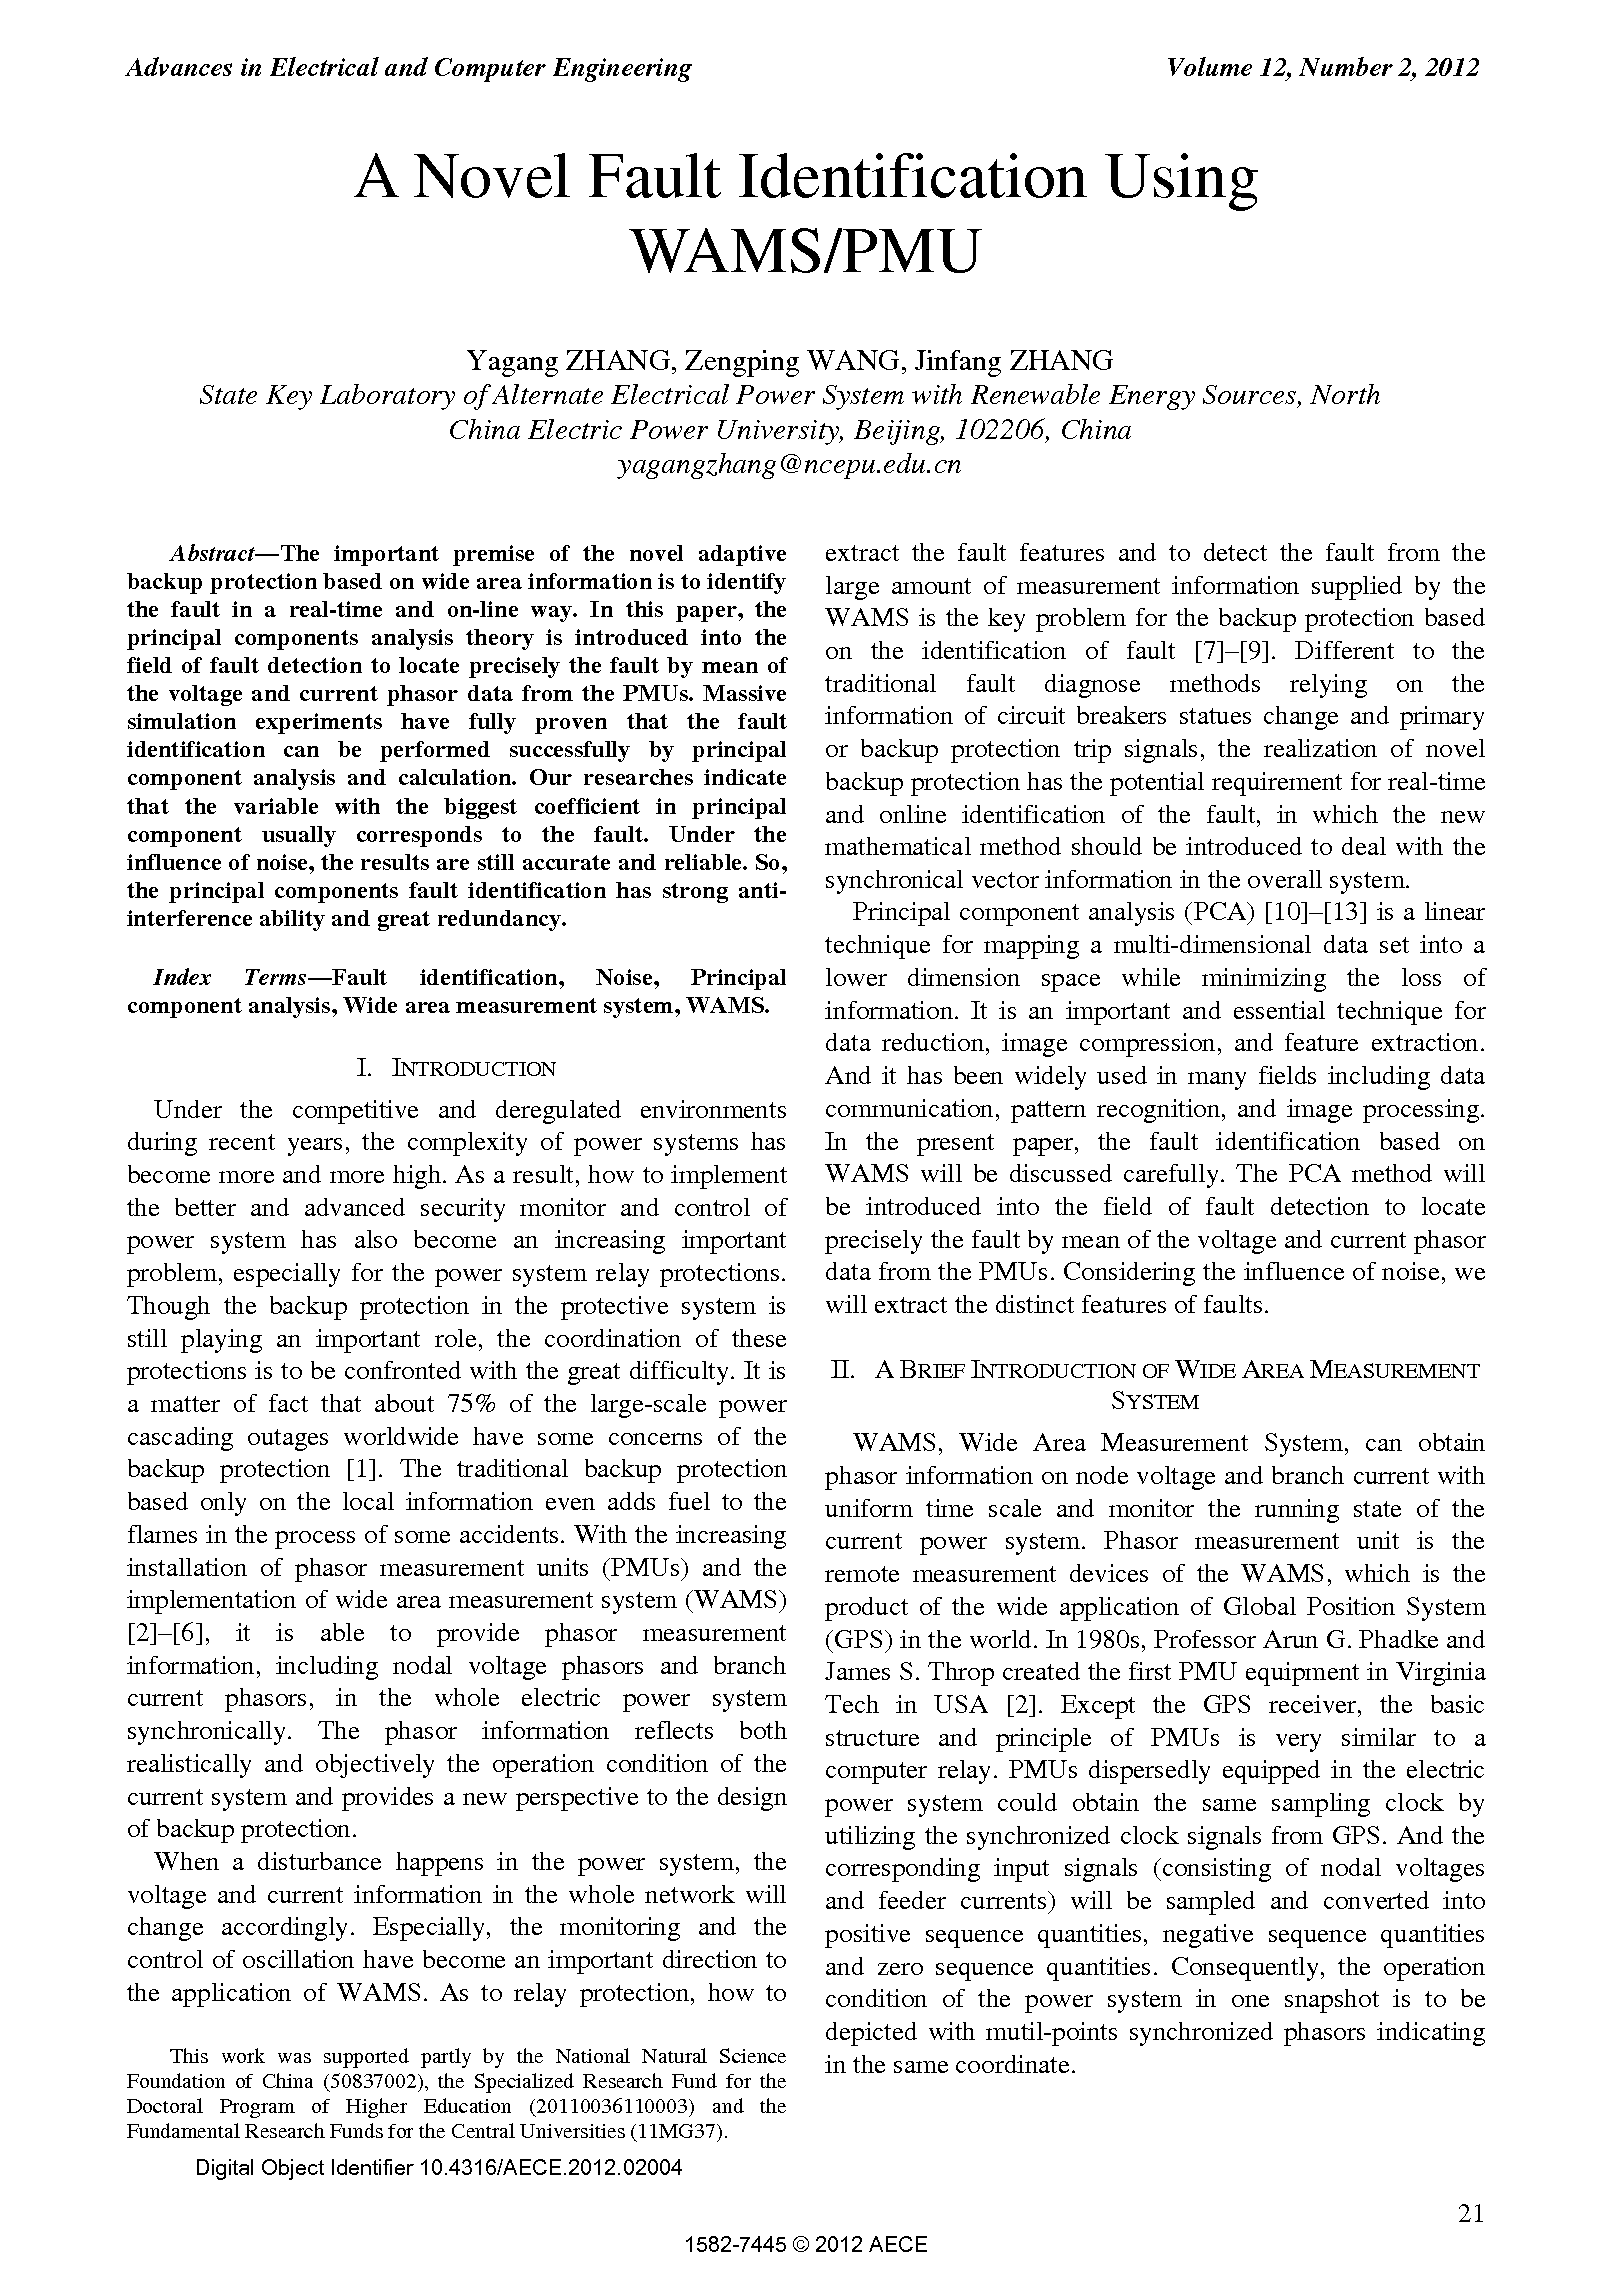 PDF Quickview for paper with DOI:10.4316/AECE.2012.02004